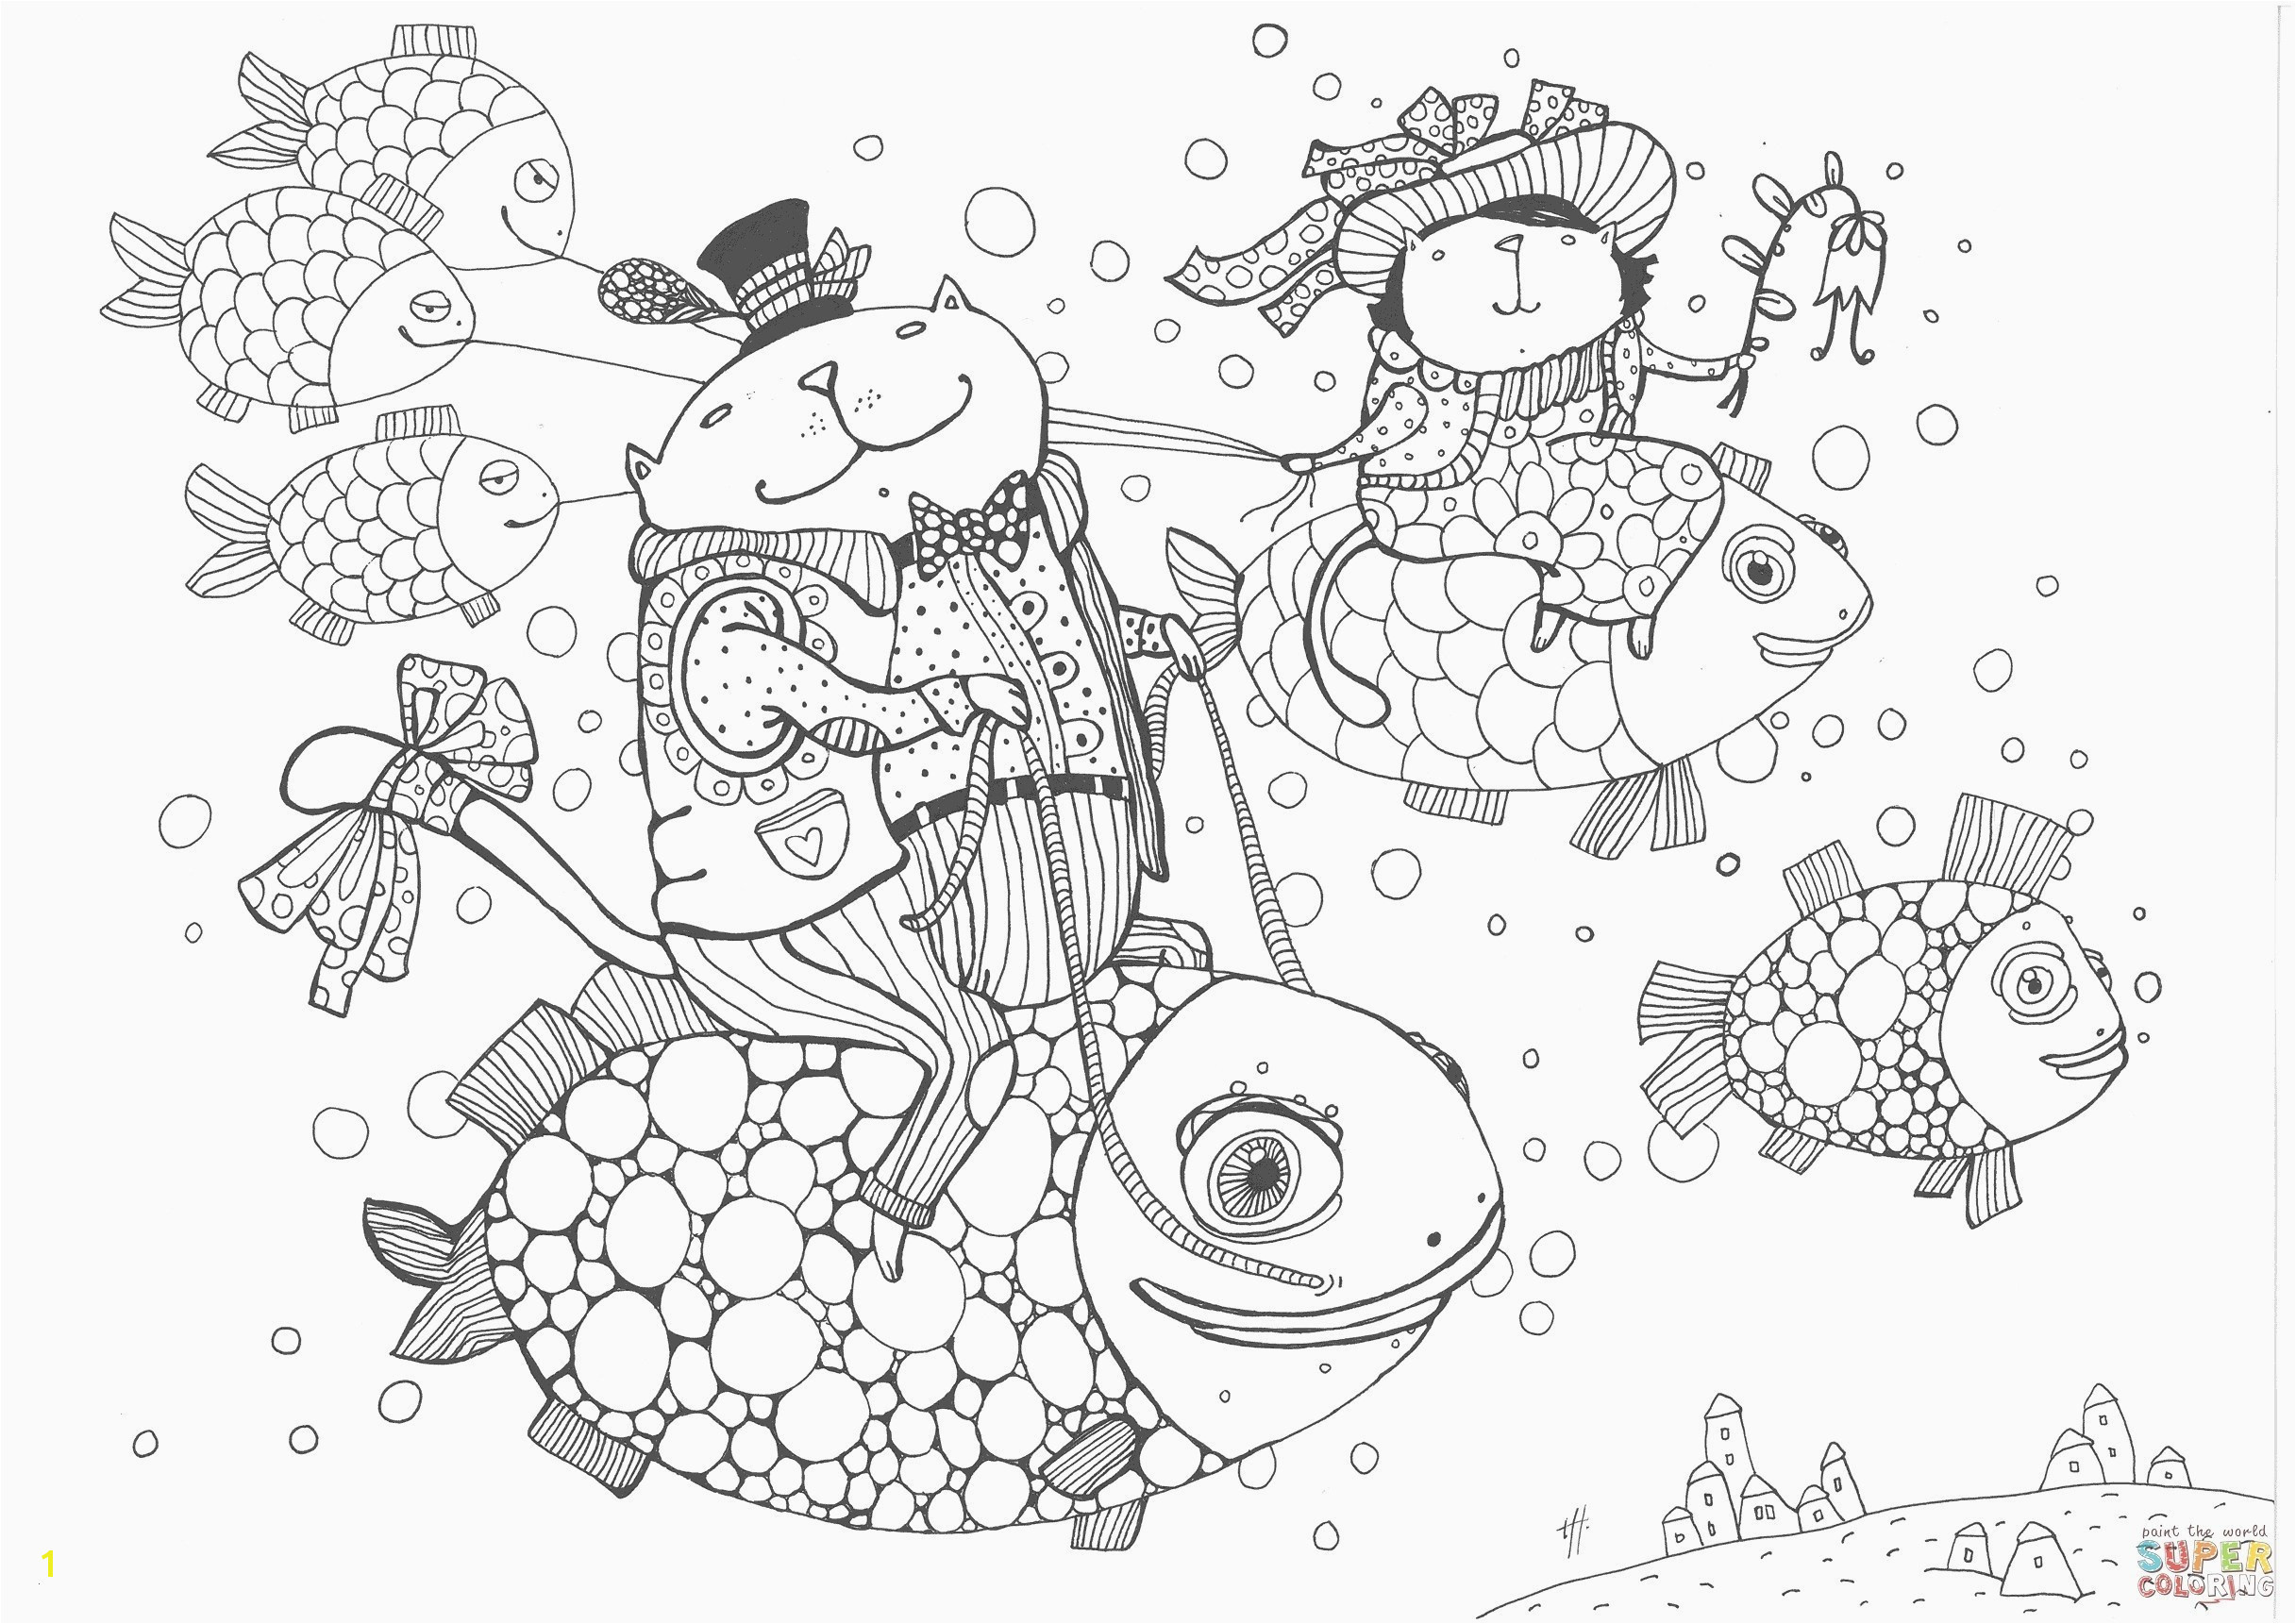 Sunset Coloring Pages Bilder Von Walen Edel Puter Coloring Pages Unique 37 Ausmalbilder